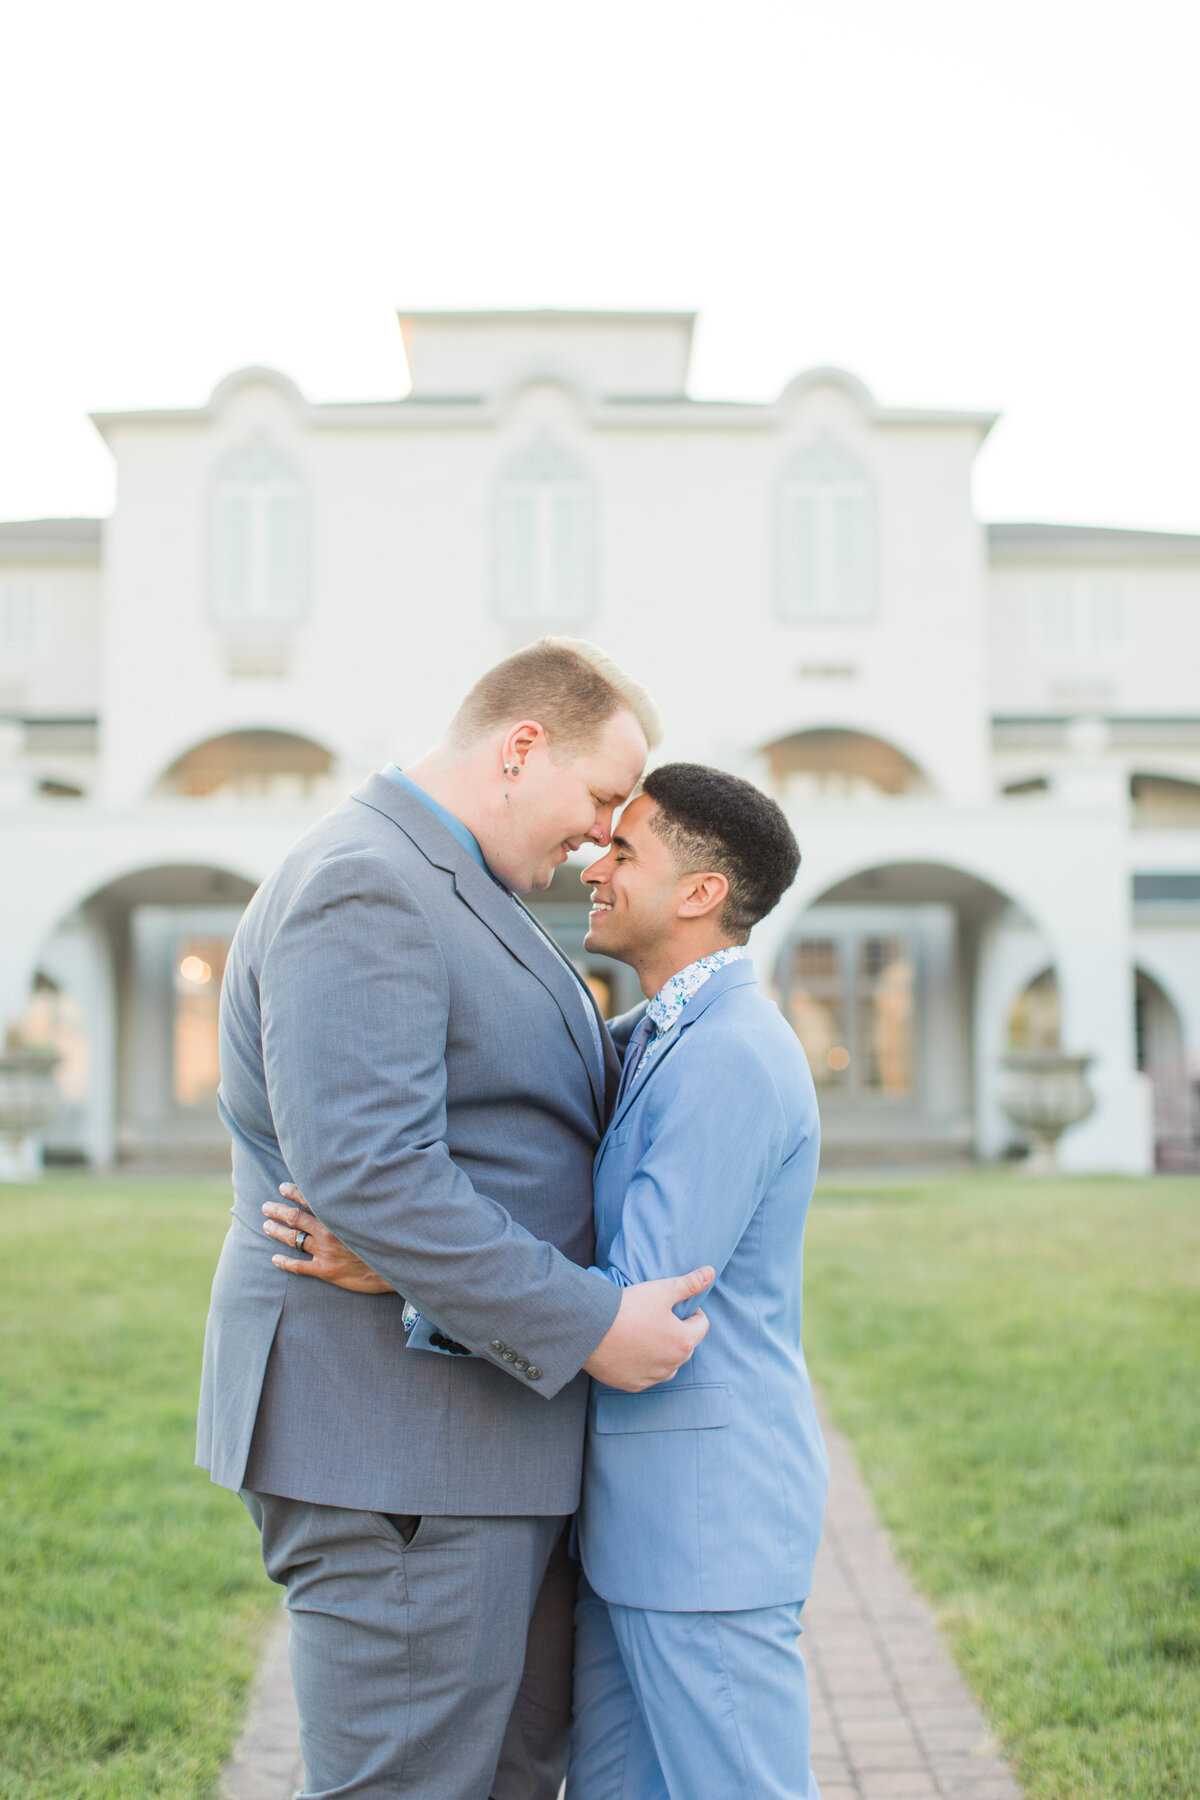 LGBTQ_Engagement_Session_Renault_Winery_Galloway_New_Jersey-79